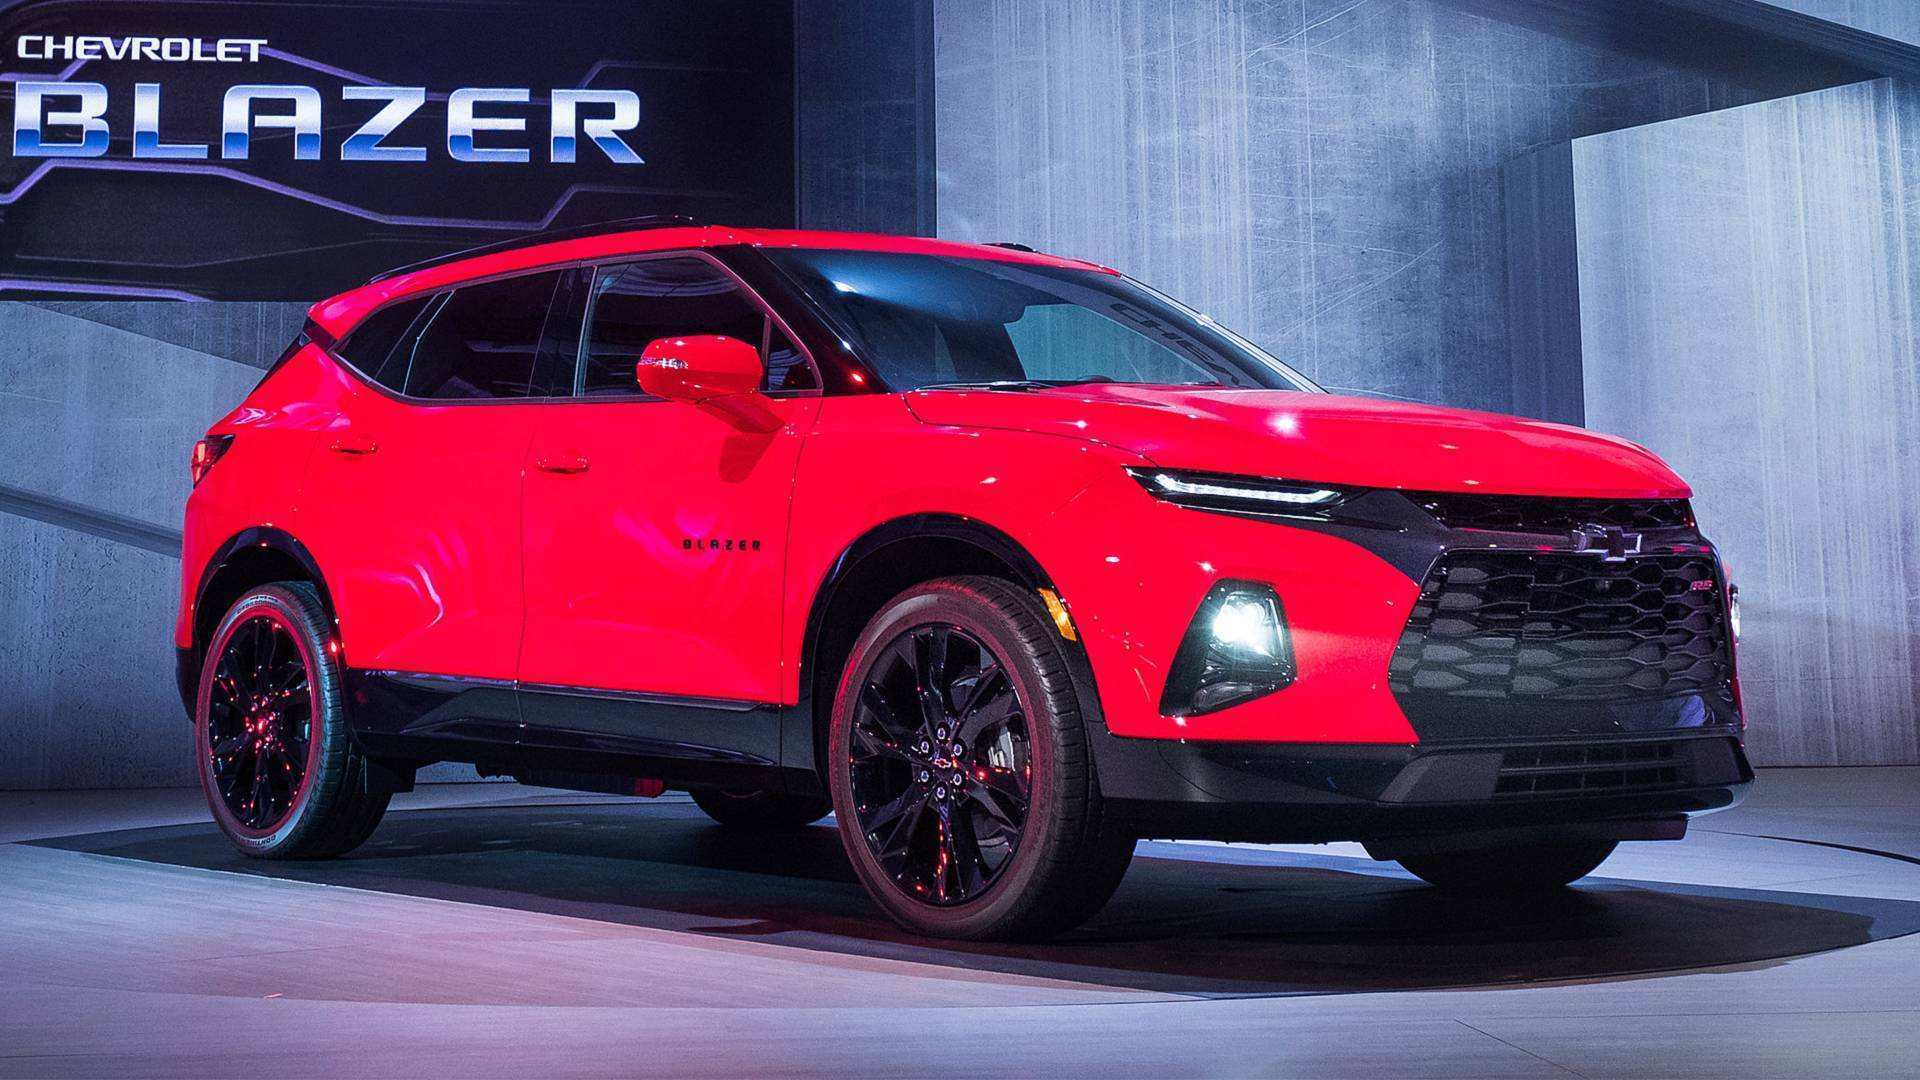 46 All New 2020 Chevrolet Blazer K 5 Price Design And Review